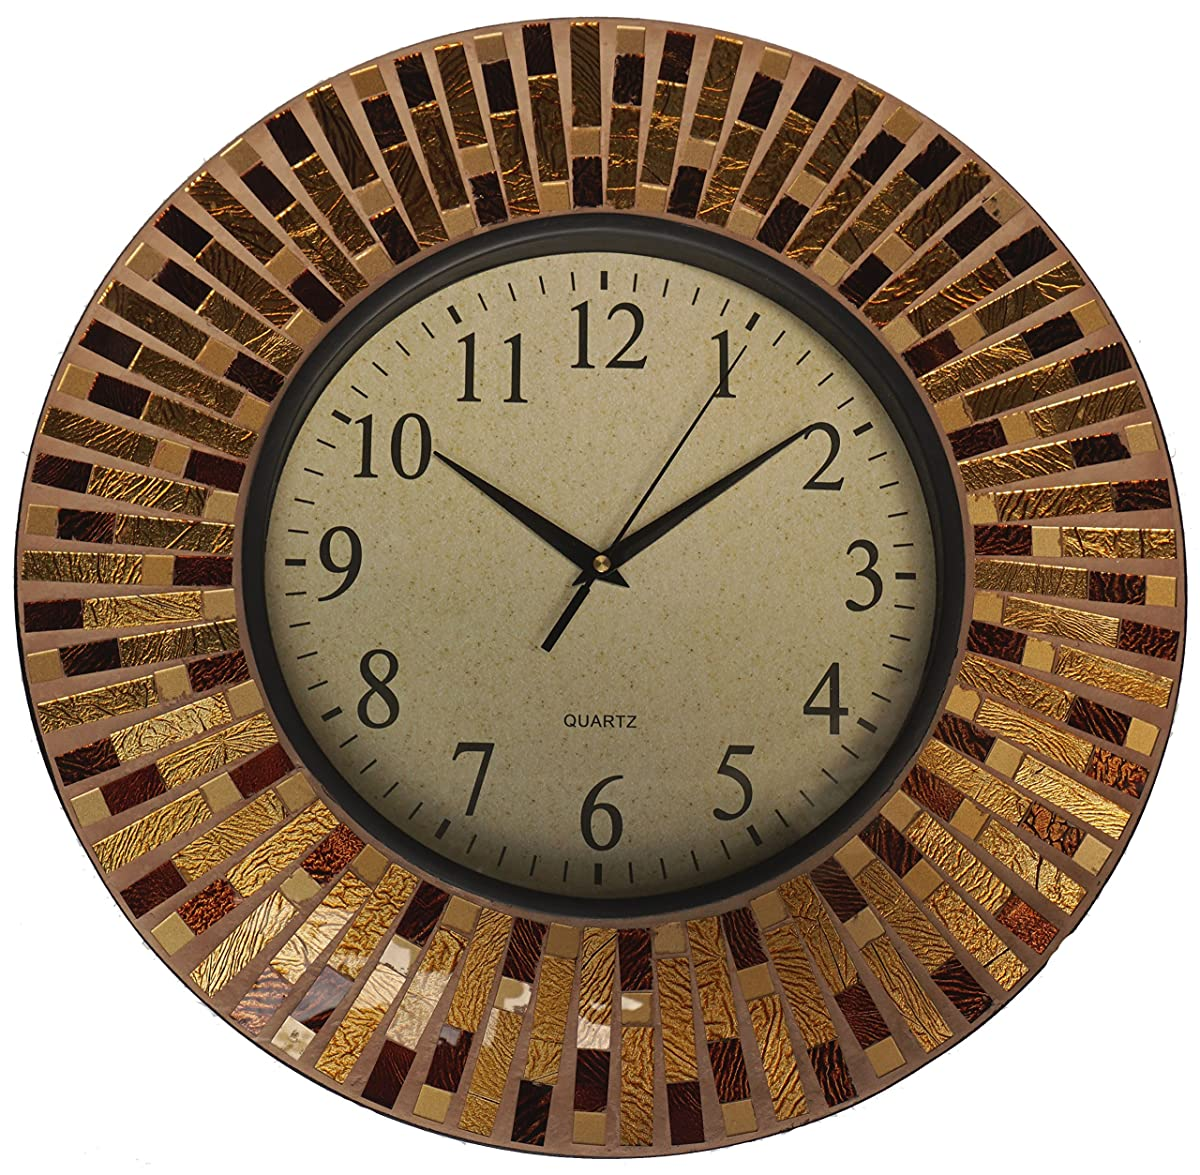 LuLu Decor, Amber Rays Mosaic Wall Clock, Silent Movement (LP84)